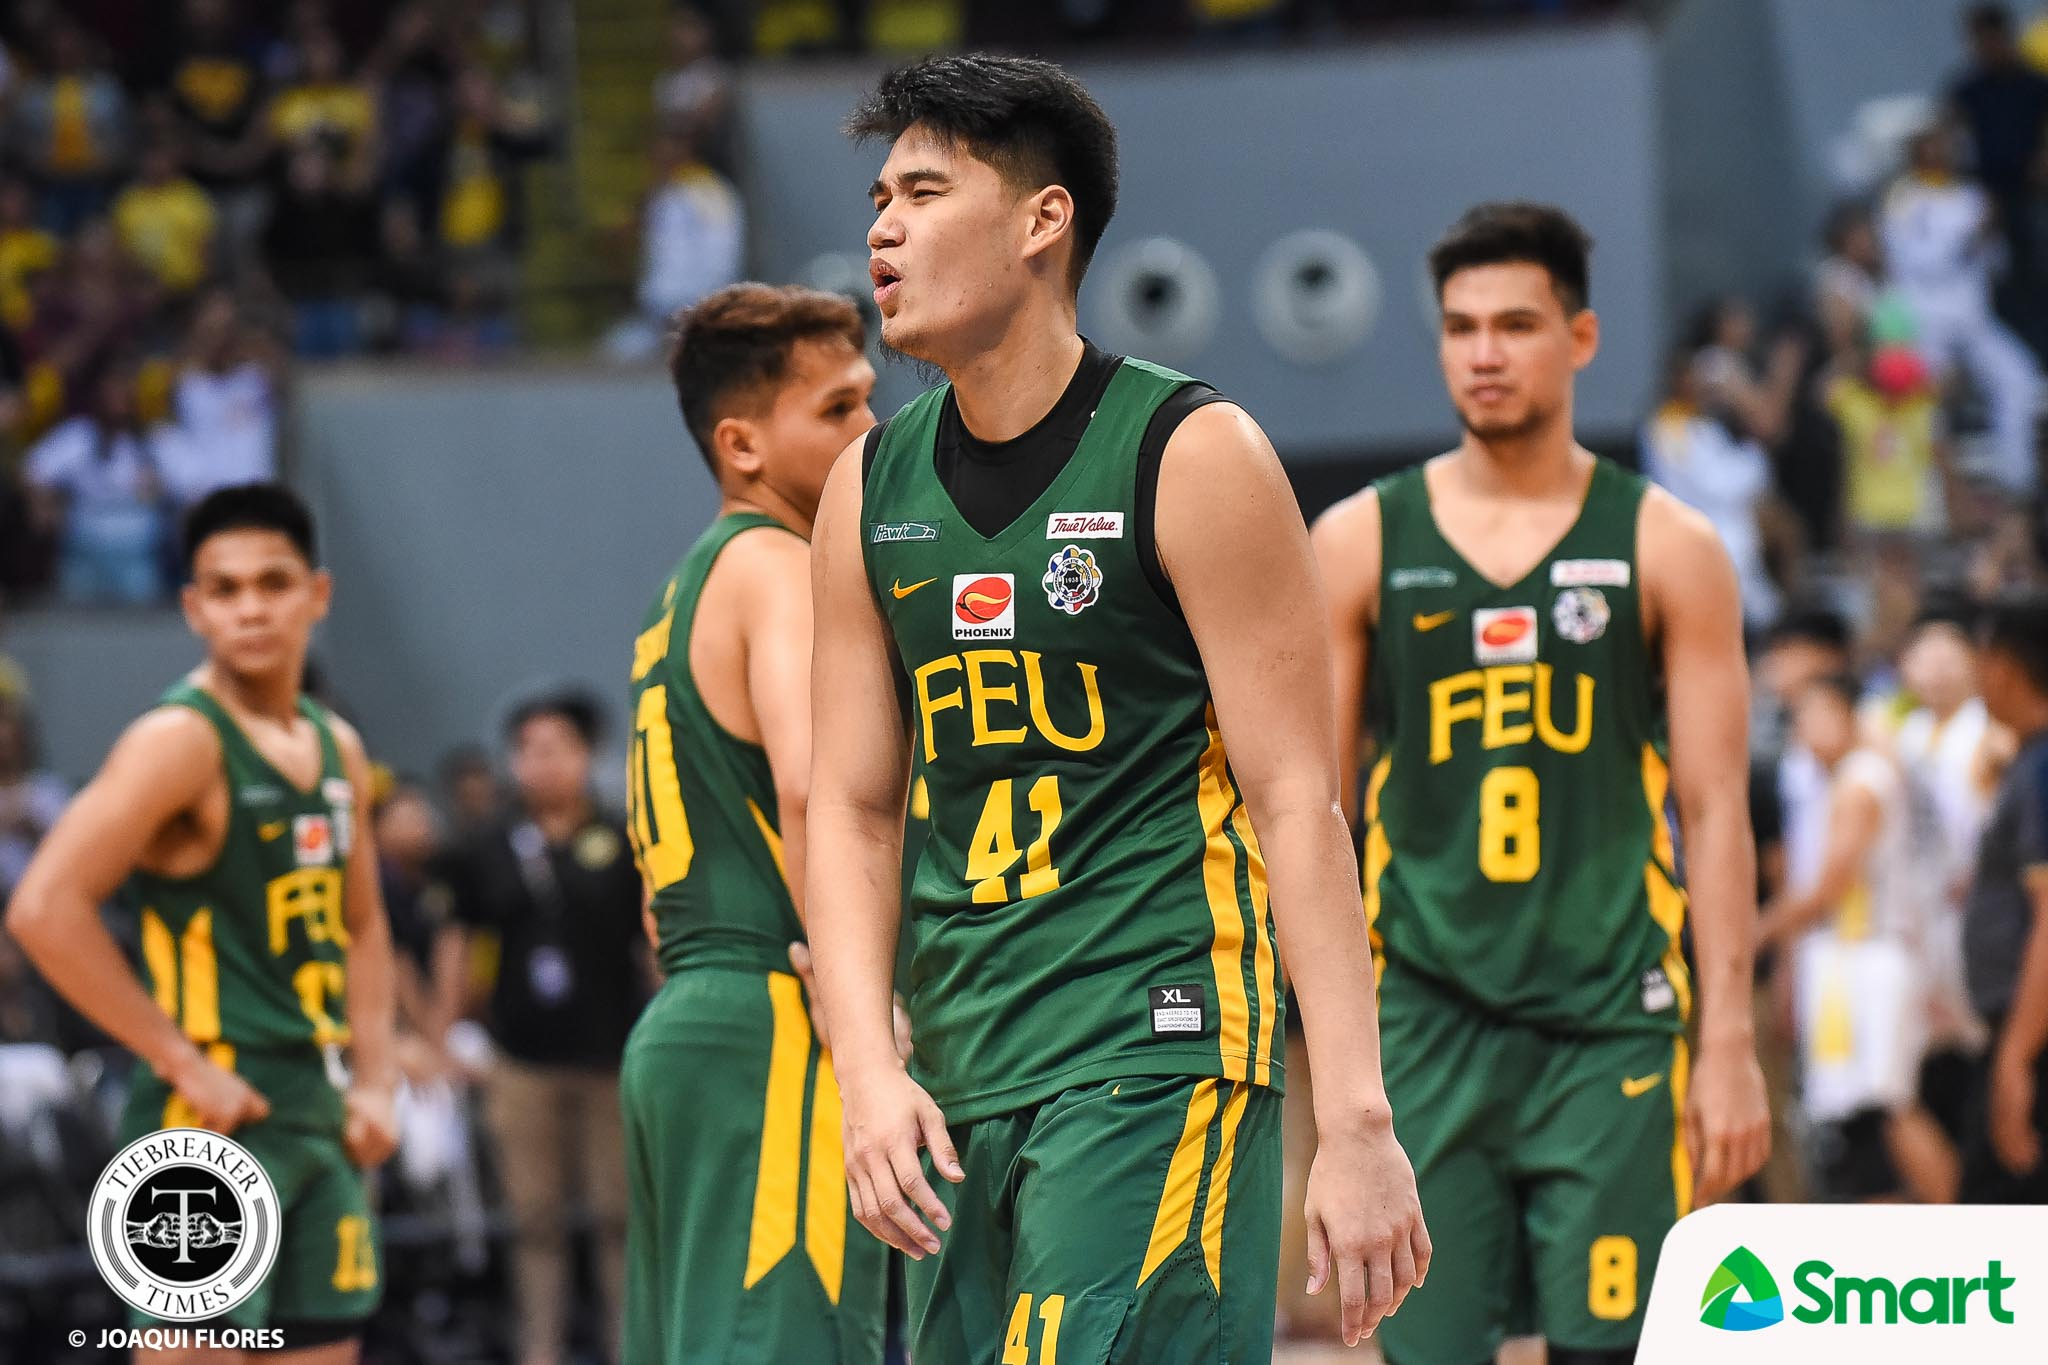 Tiebreaker Times Olsen Racela guarantees: 'Arvin has learned his lesson' Basketball FEU News UAAP  UAAP Season 81 Men's Basketball UAAP Season 81 Olsen Racela FEU Men's Basketball Arvin Tolentino